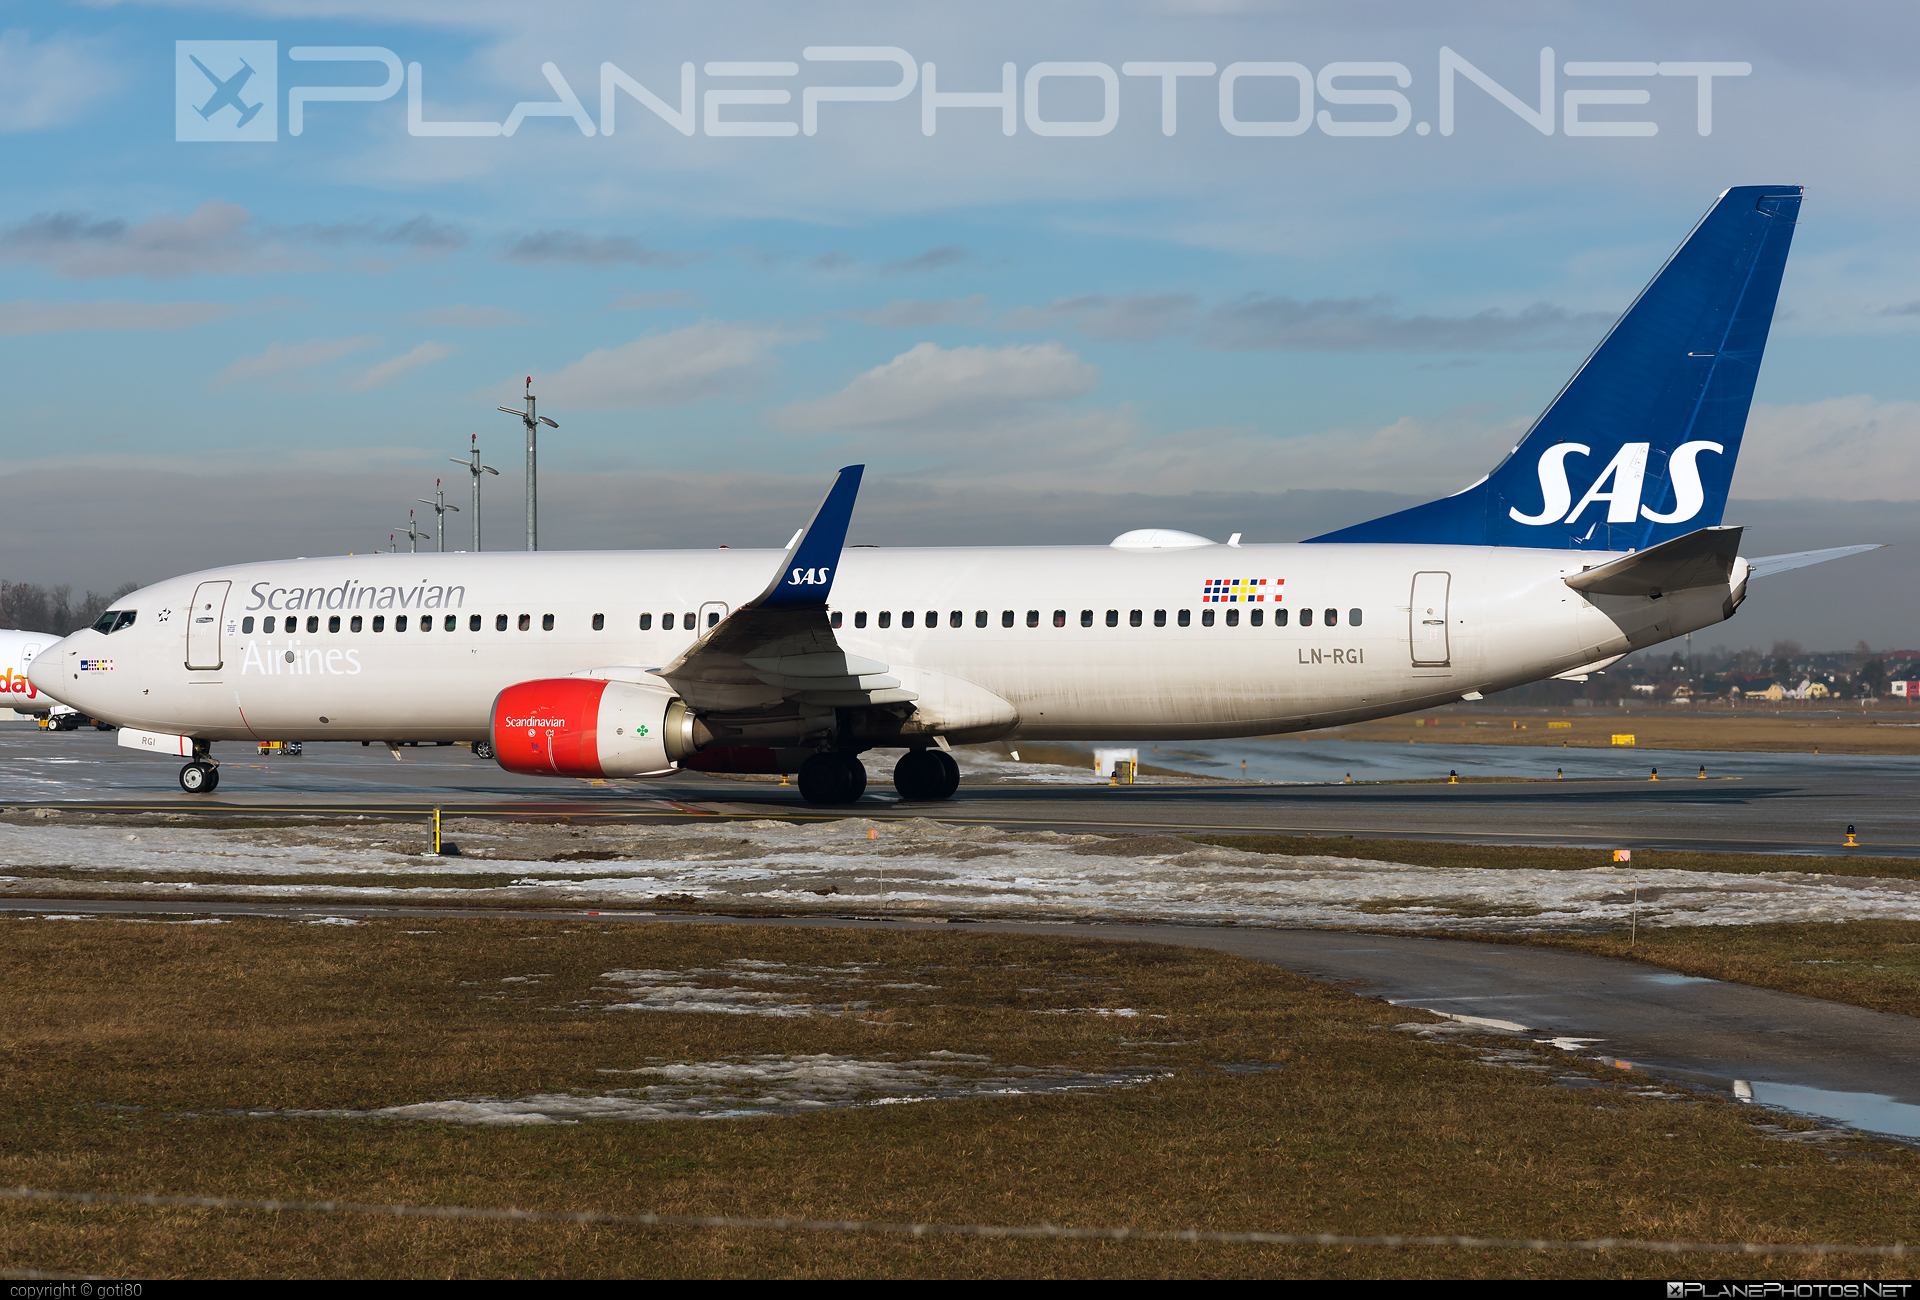 Boeing 737-800 - LN-RGI operated by Scandinavian Airlines (SAS) #b737 #b737nextgen #b737ng #boeing #boeing737 #sas #sasairlines #scandinavianairlines